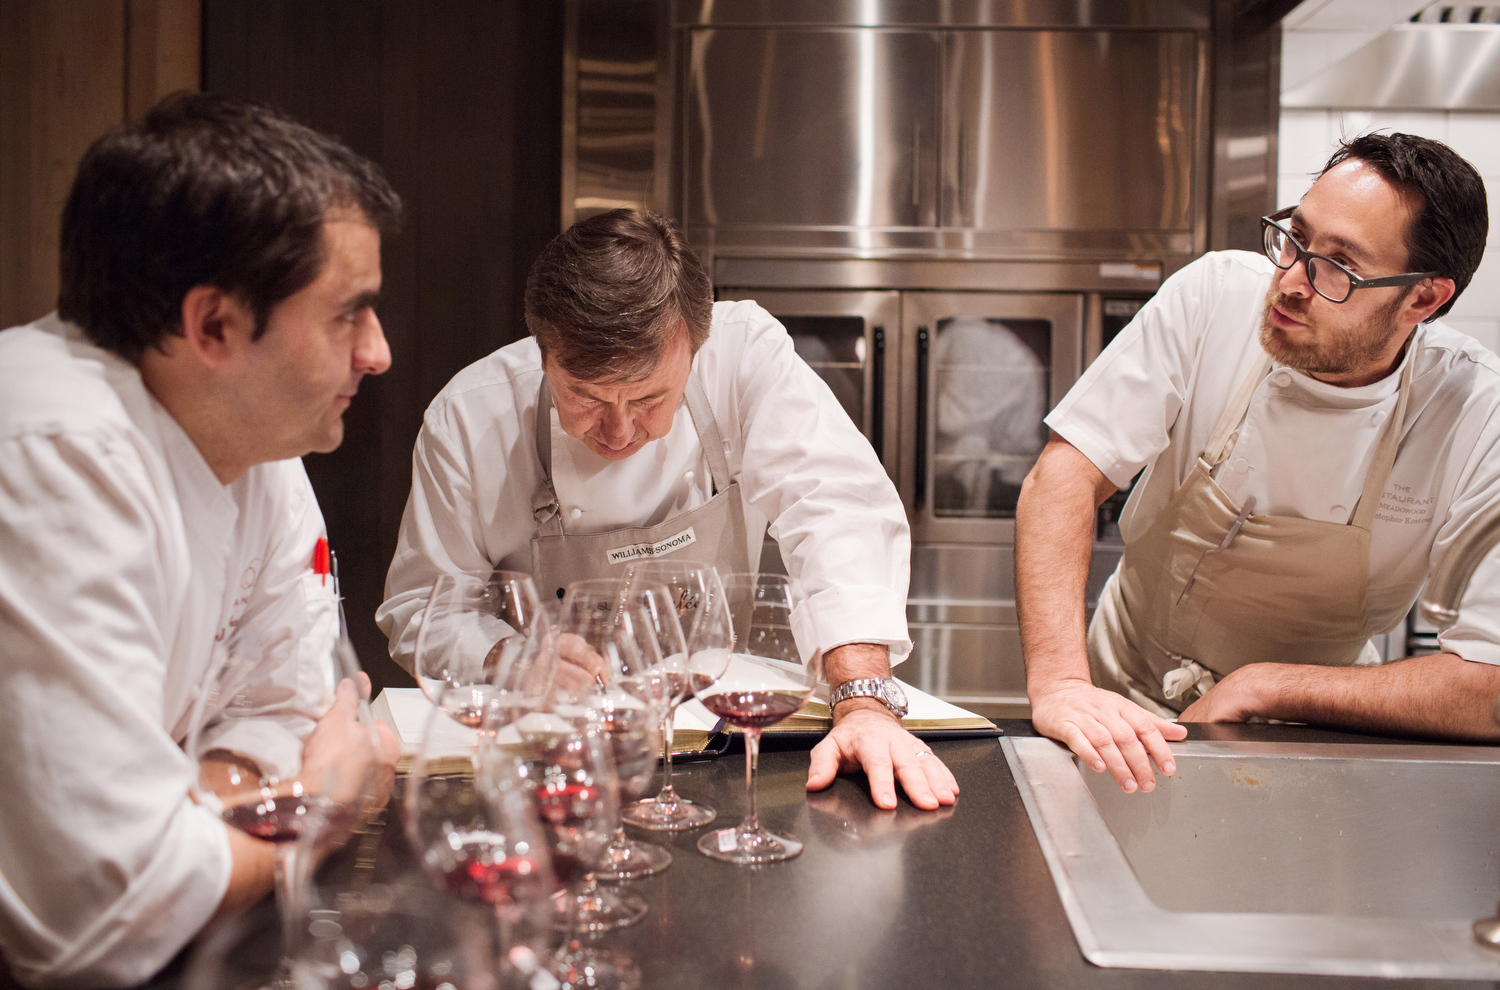 Many Michelin stars and James Beard Foundation awards between them, chefs Jean François Bruel, Daniel Boulud and Christopher Kostow, left to right.